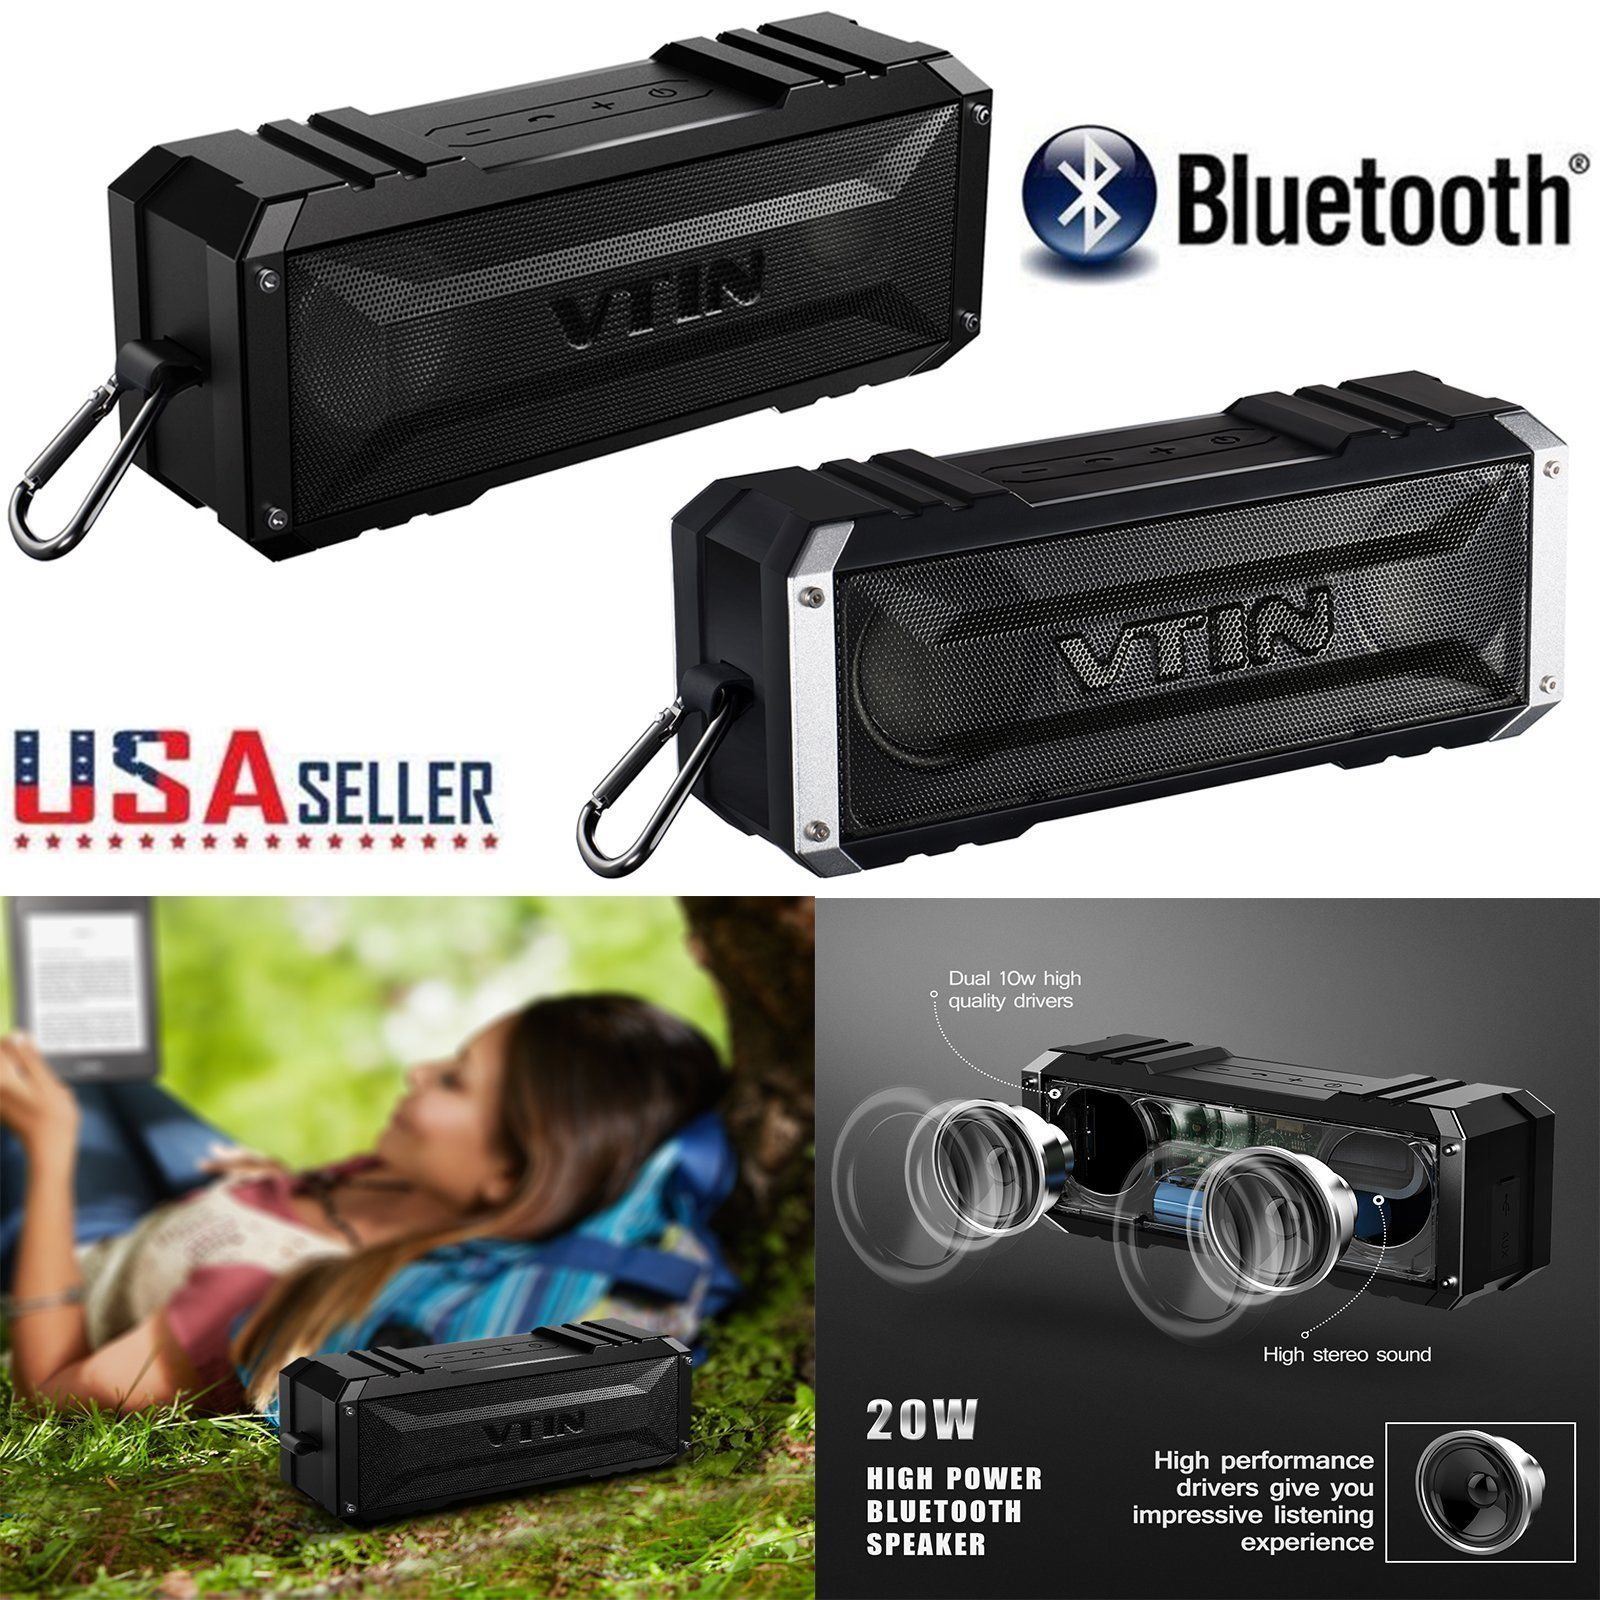 VTIN 20W Bluetooth 4.0 Wireless Speaker Stereo Punker AUX Portable Waterproof